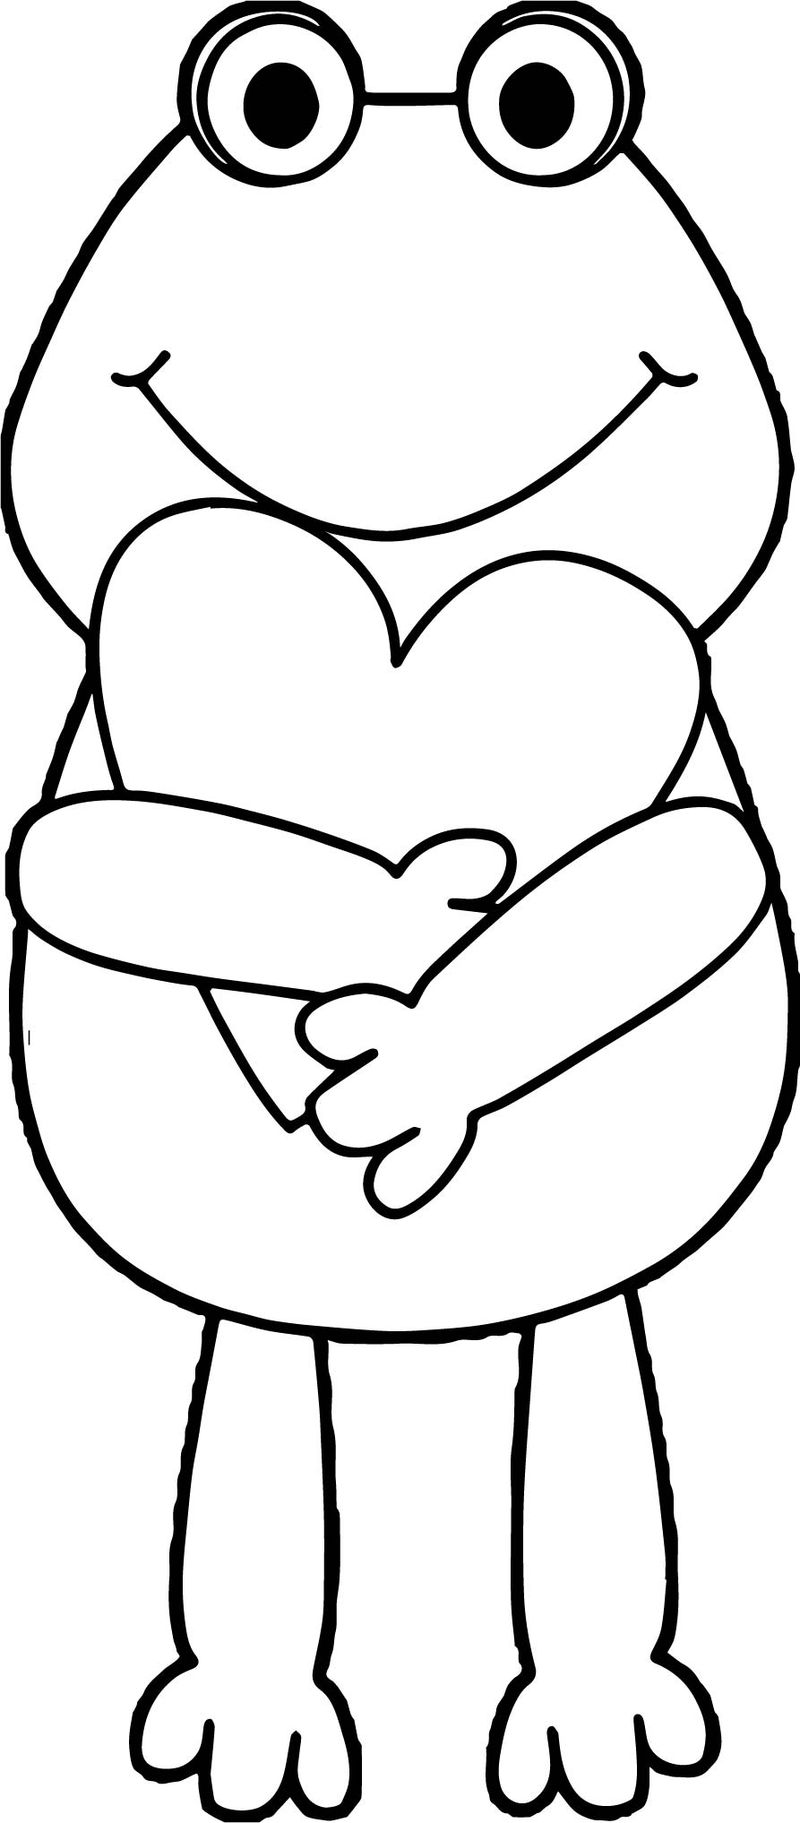 Frog Holding Heart Coloring Page